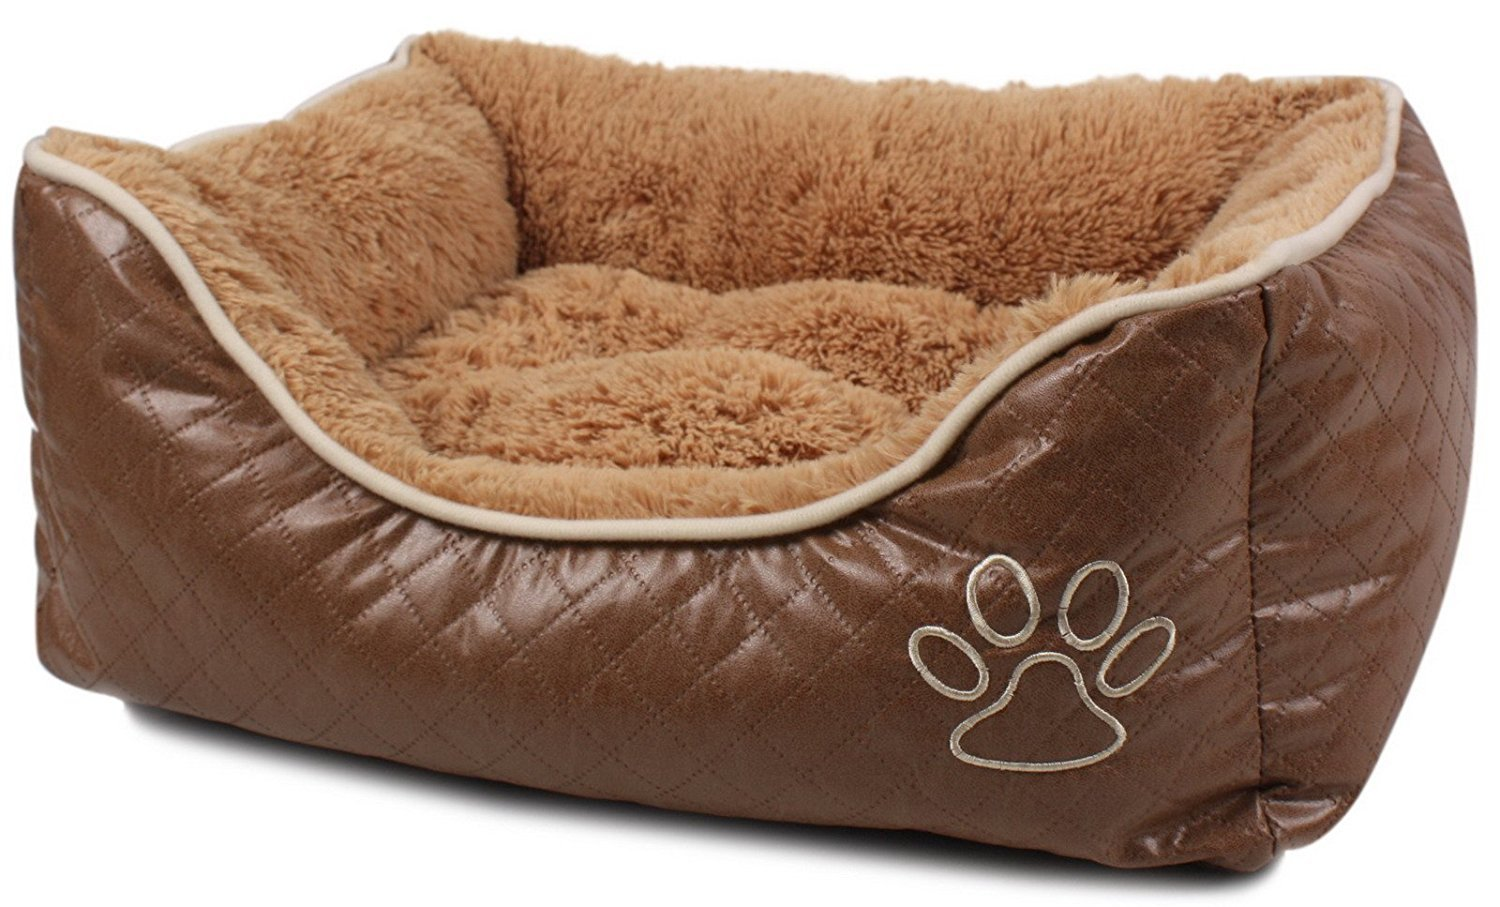 pet home supplies b to medium large beds warming products pillows outdoors self lounge n wildlife extra furniture h k the dog square depot black bed sleeper